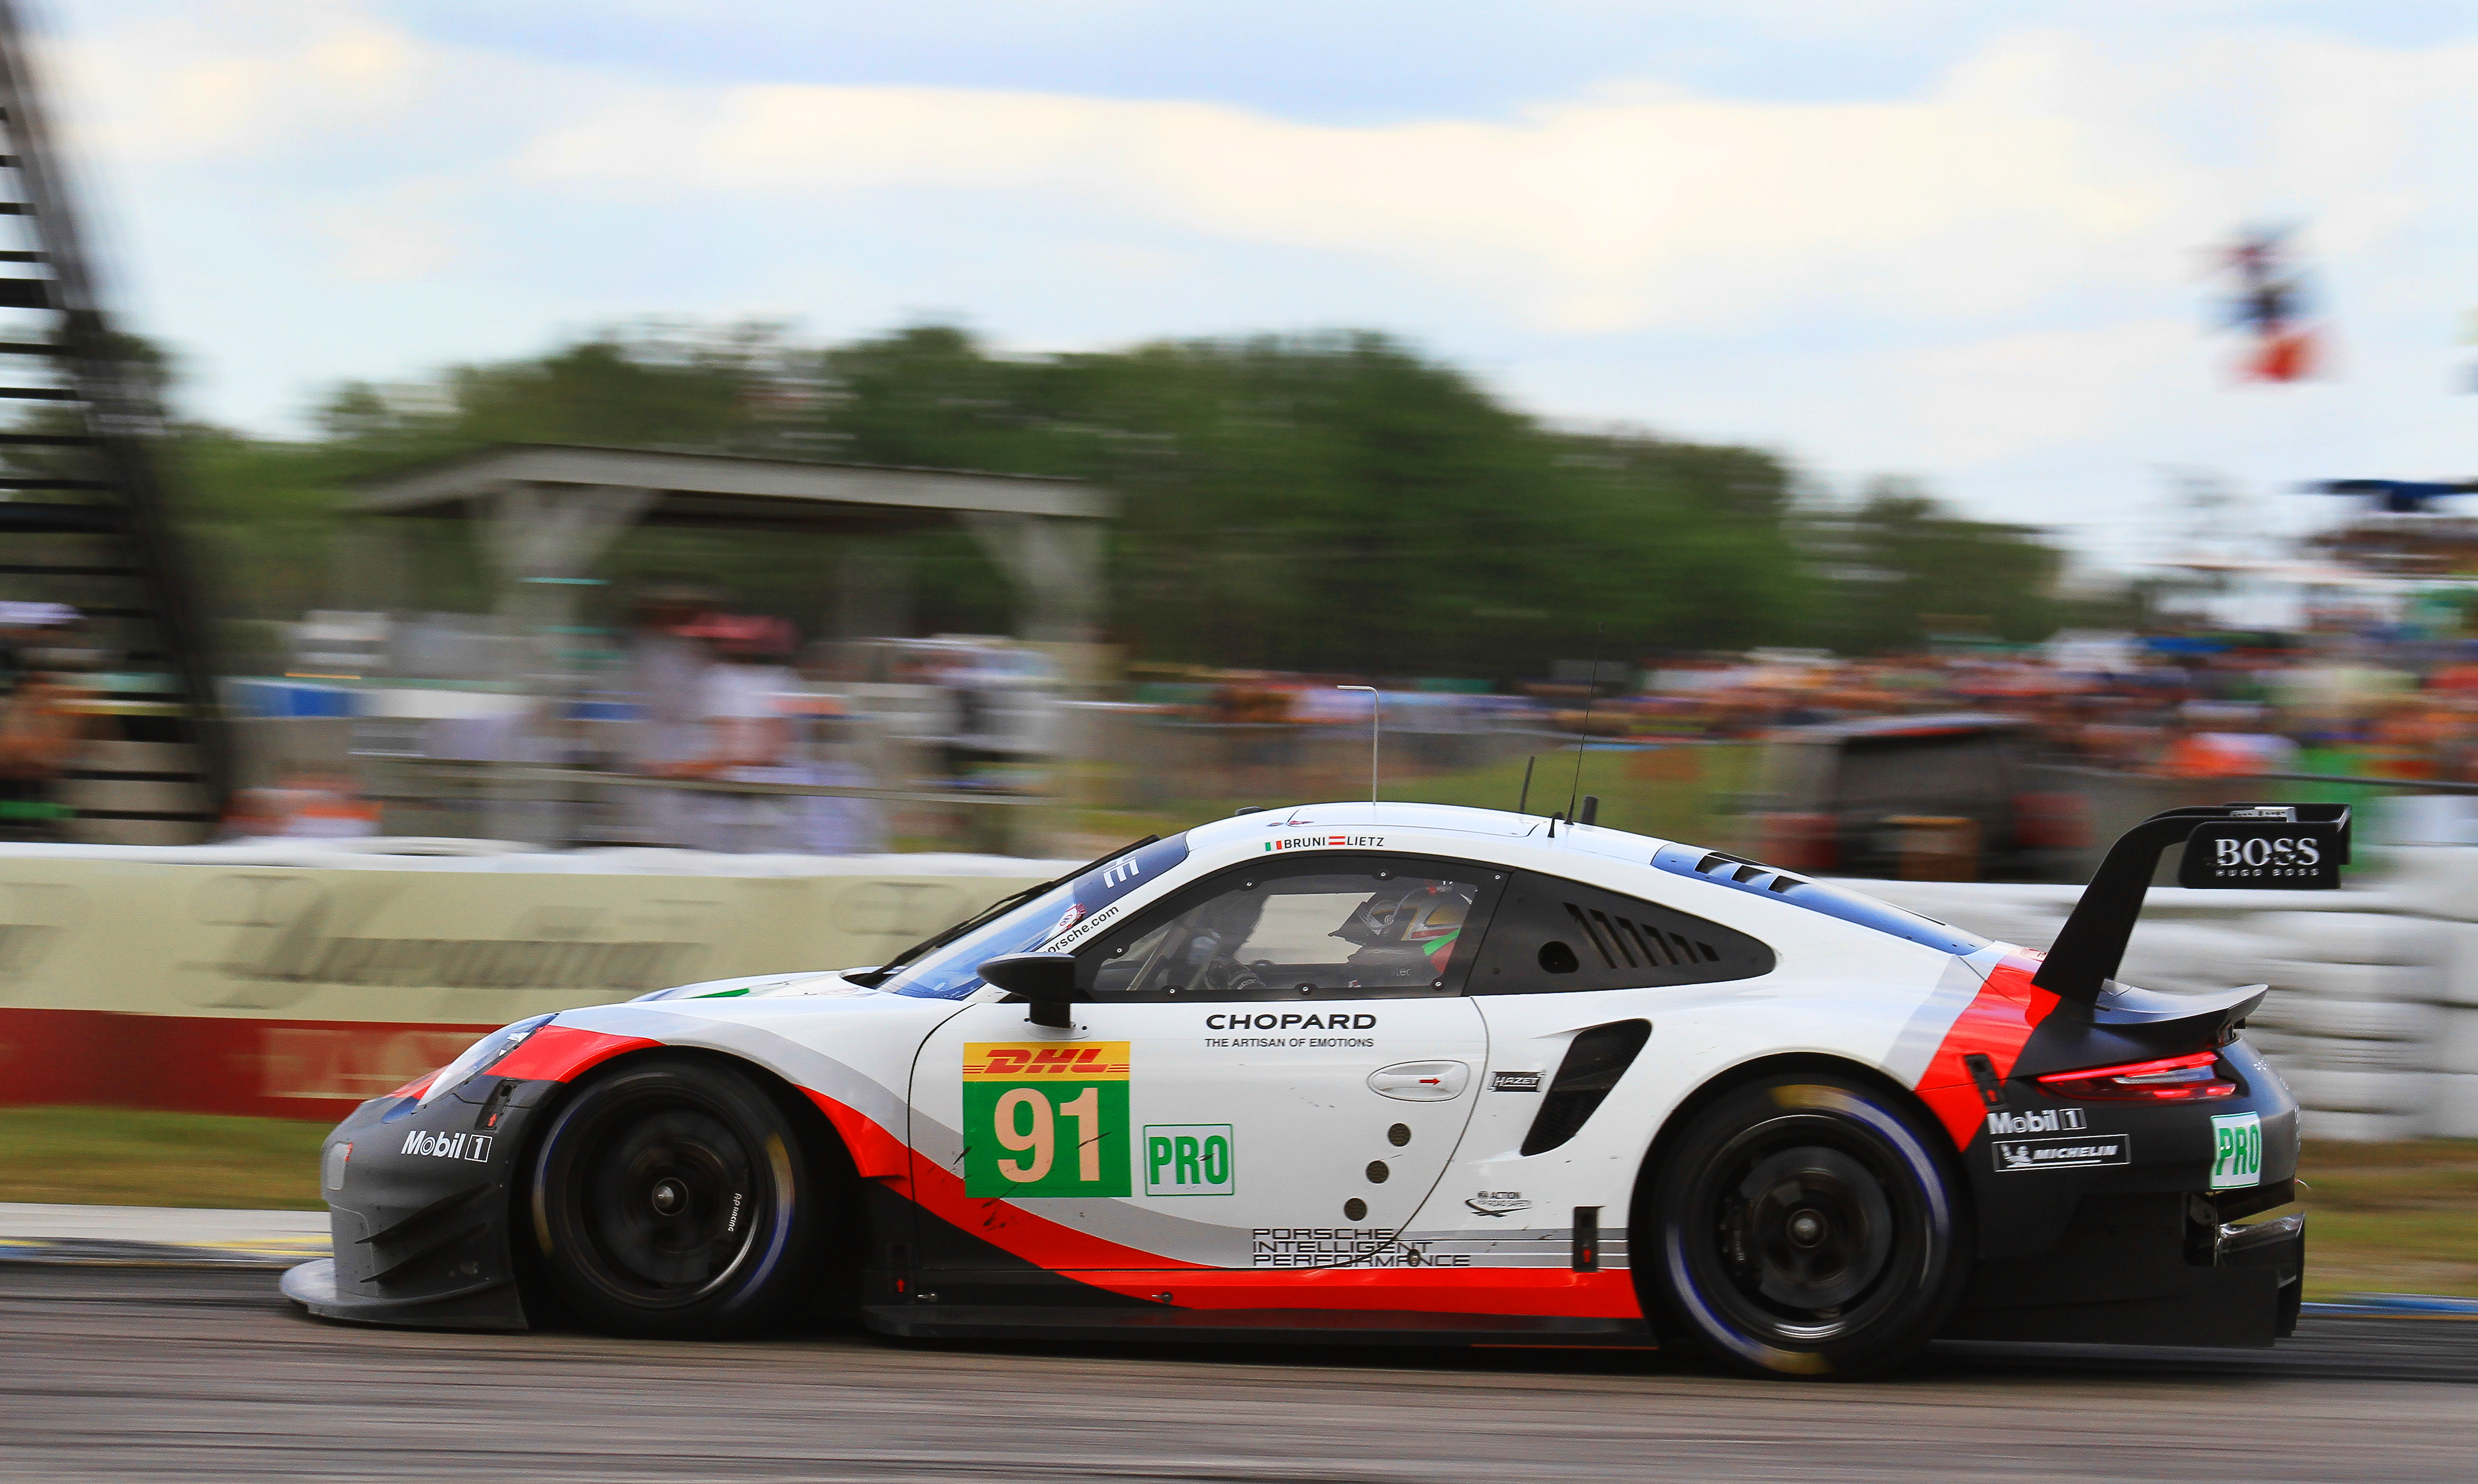 The #91 Porsche won GTE-Pro with fuel